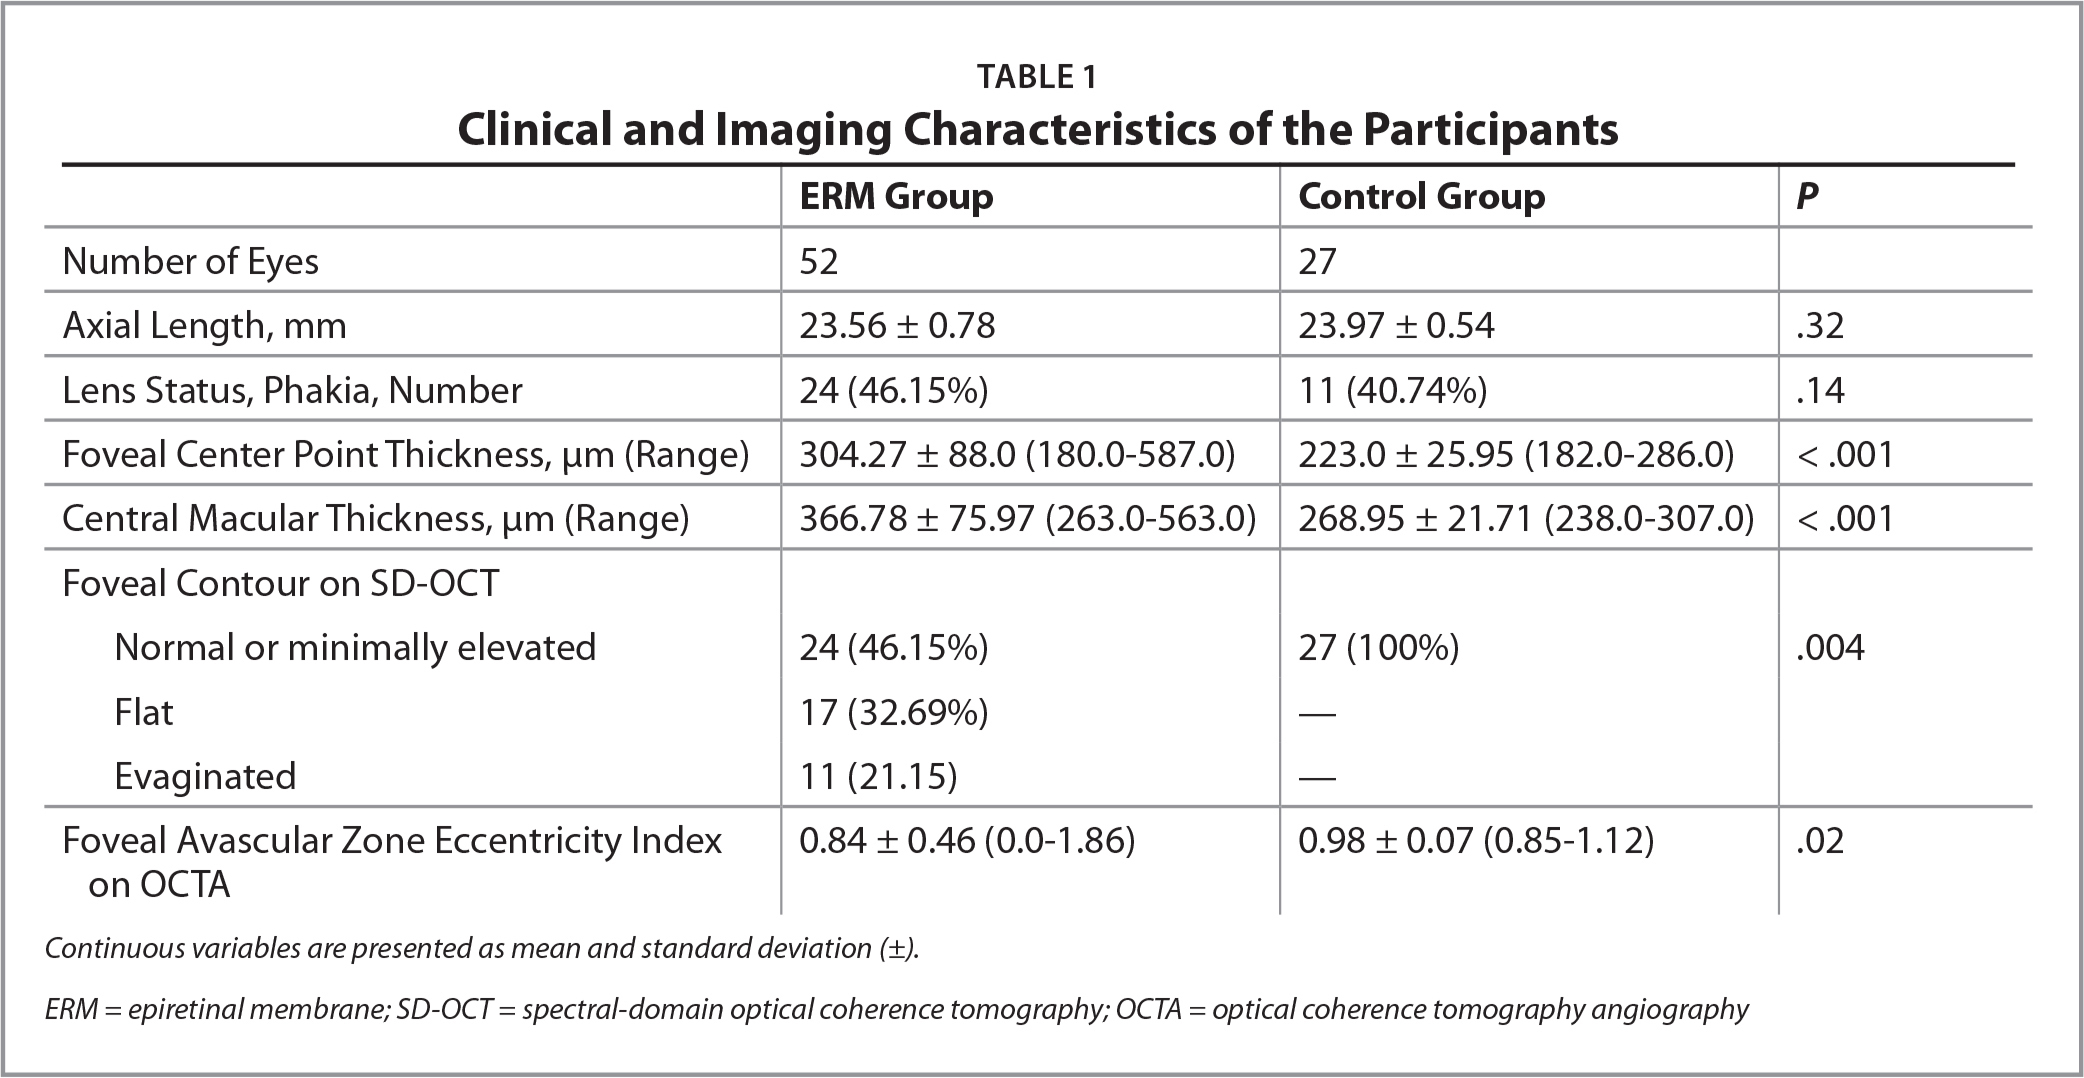 Clinical and Imaging Characteristics of the Participants